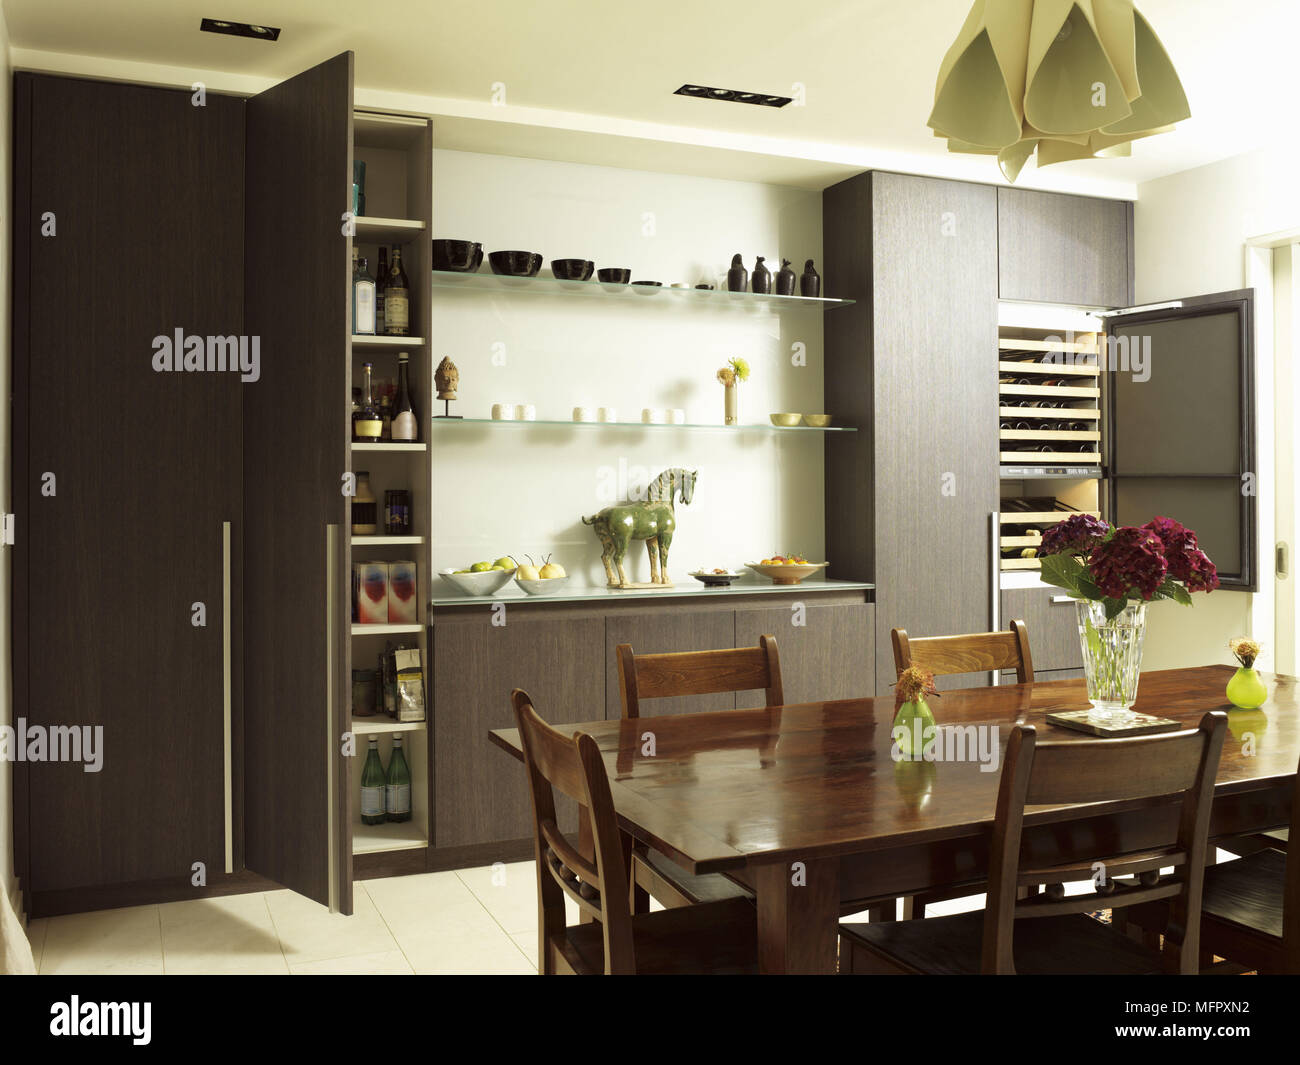 Dining Table And Chairs In Front Of Central Island Unit In Spacious Kitchen With Wood Units With Open Cupboard Door Stock Photo Alamy